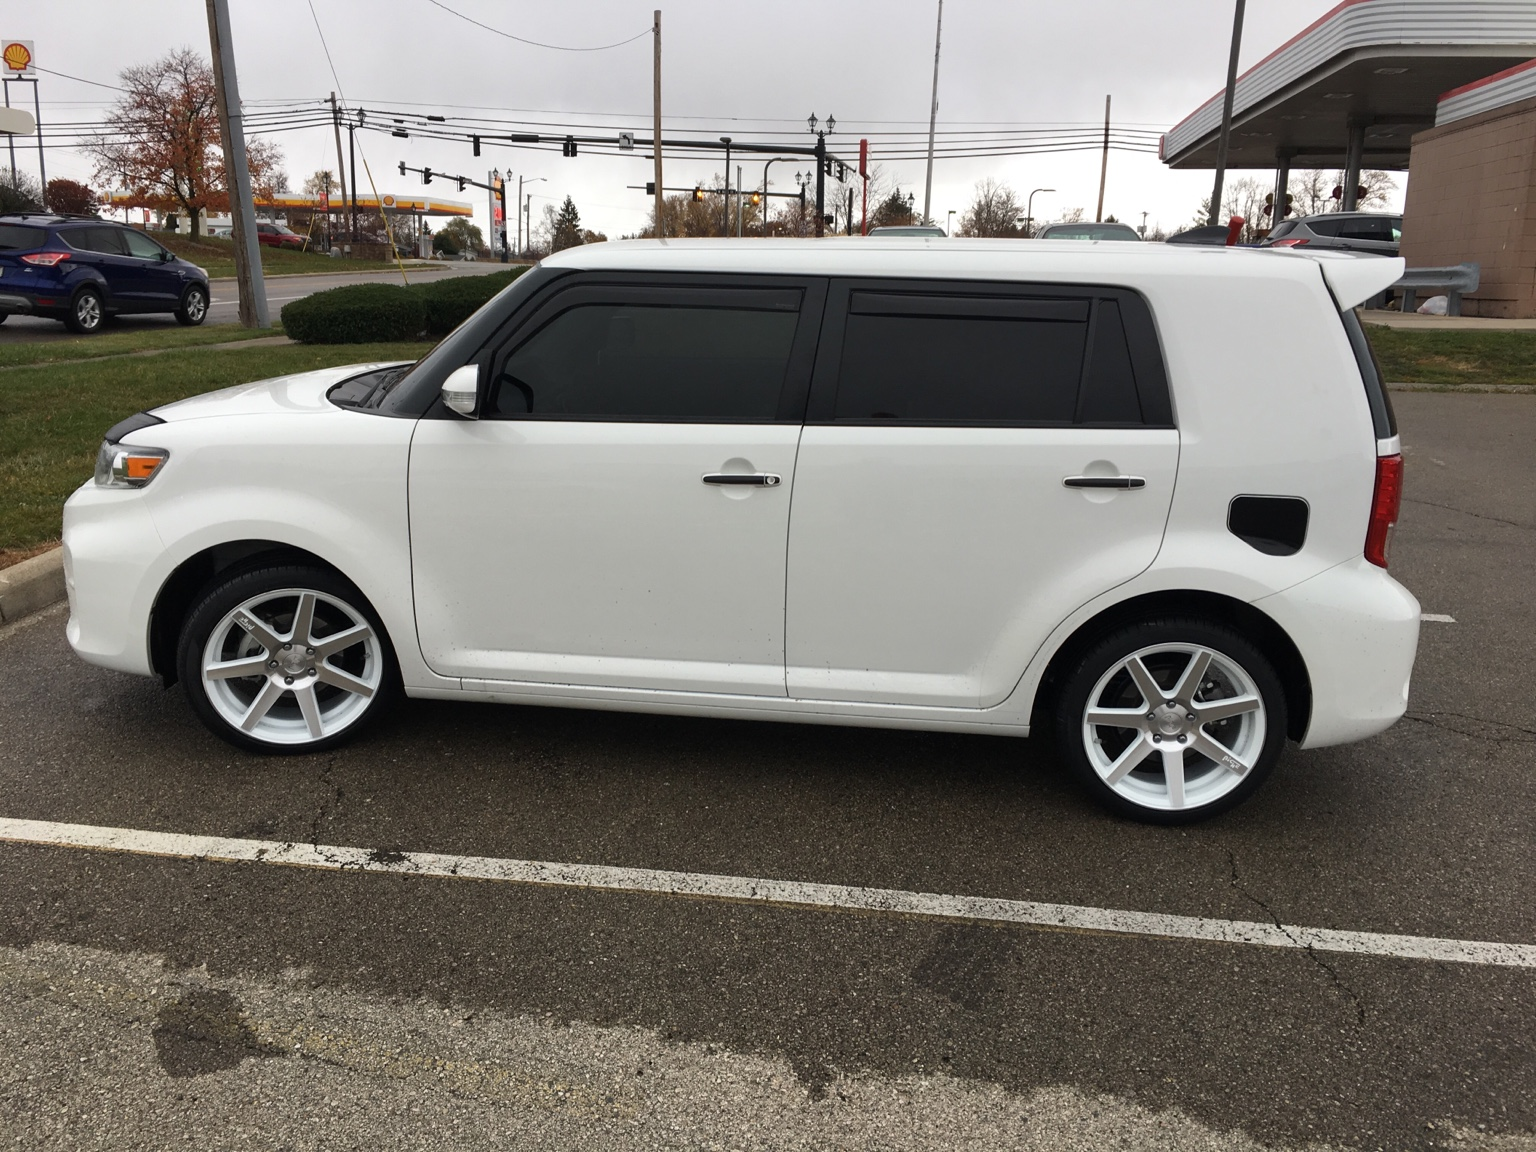 18 inch wheels on 2015 white scion xb scion xb forum. Black Bedroom Furniture Sets. Home Design Ideas